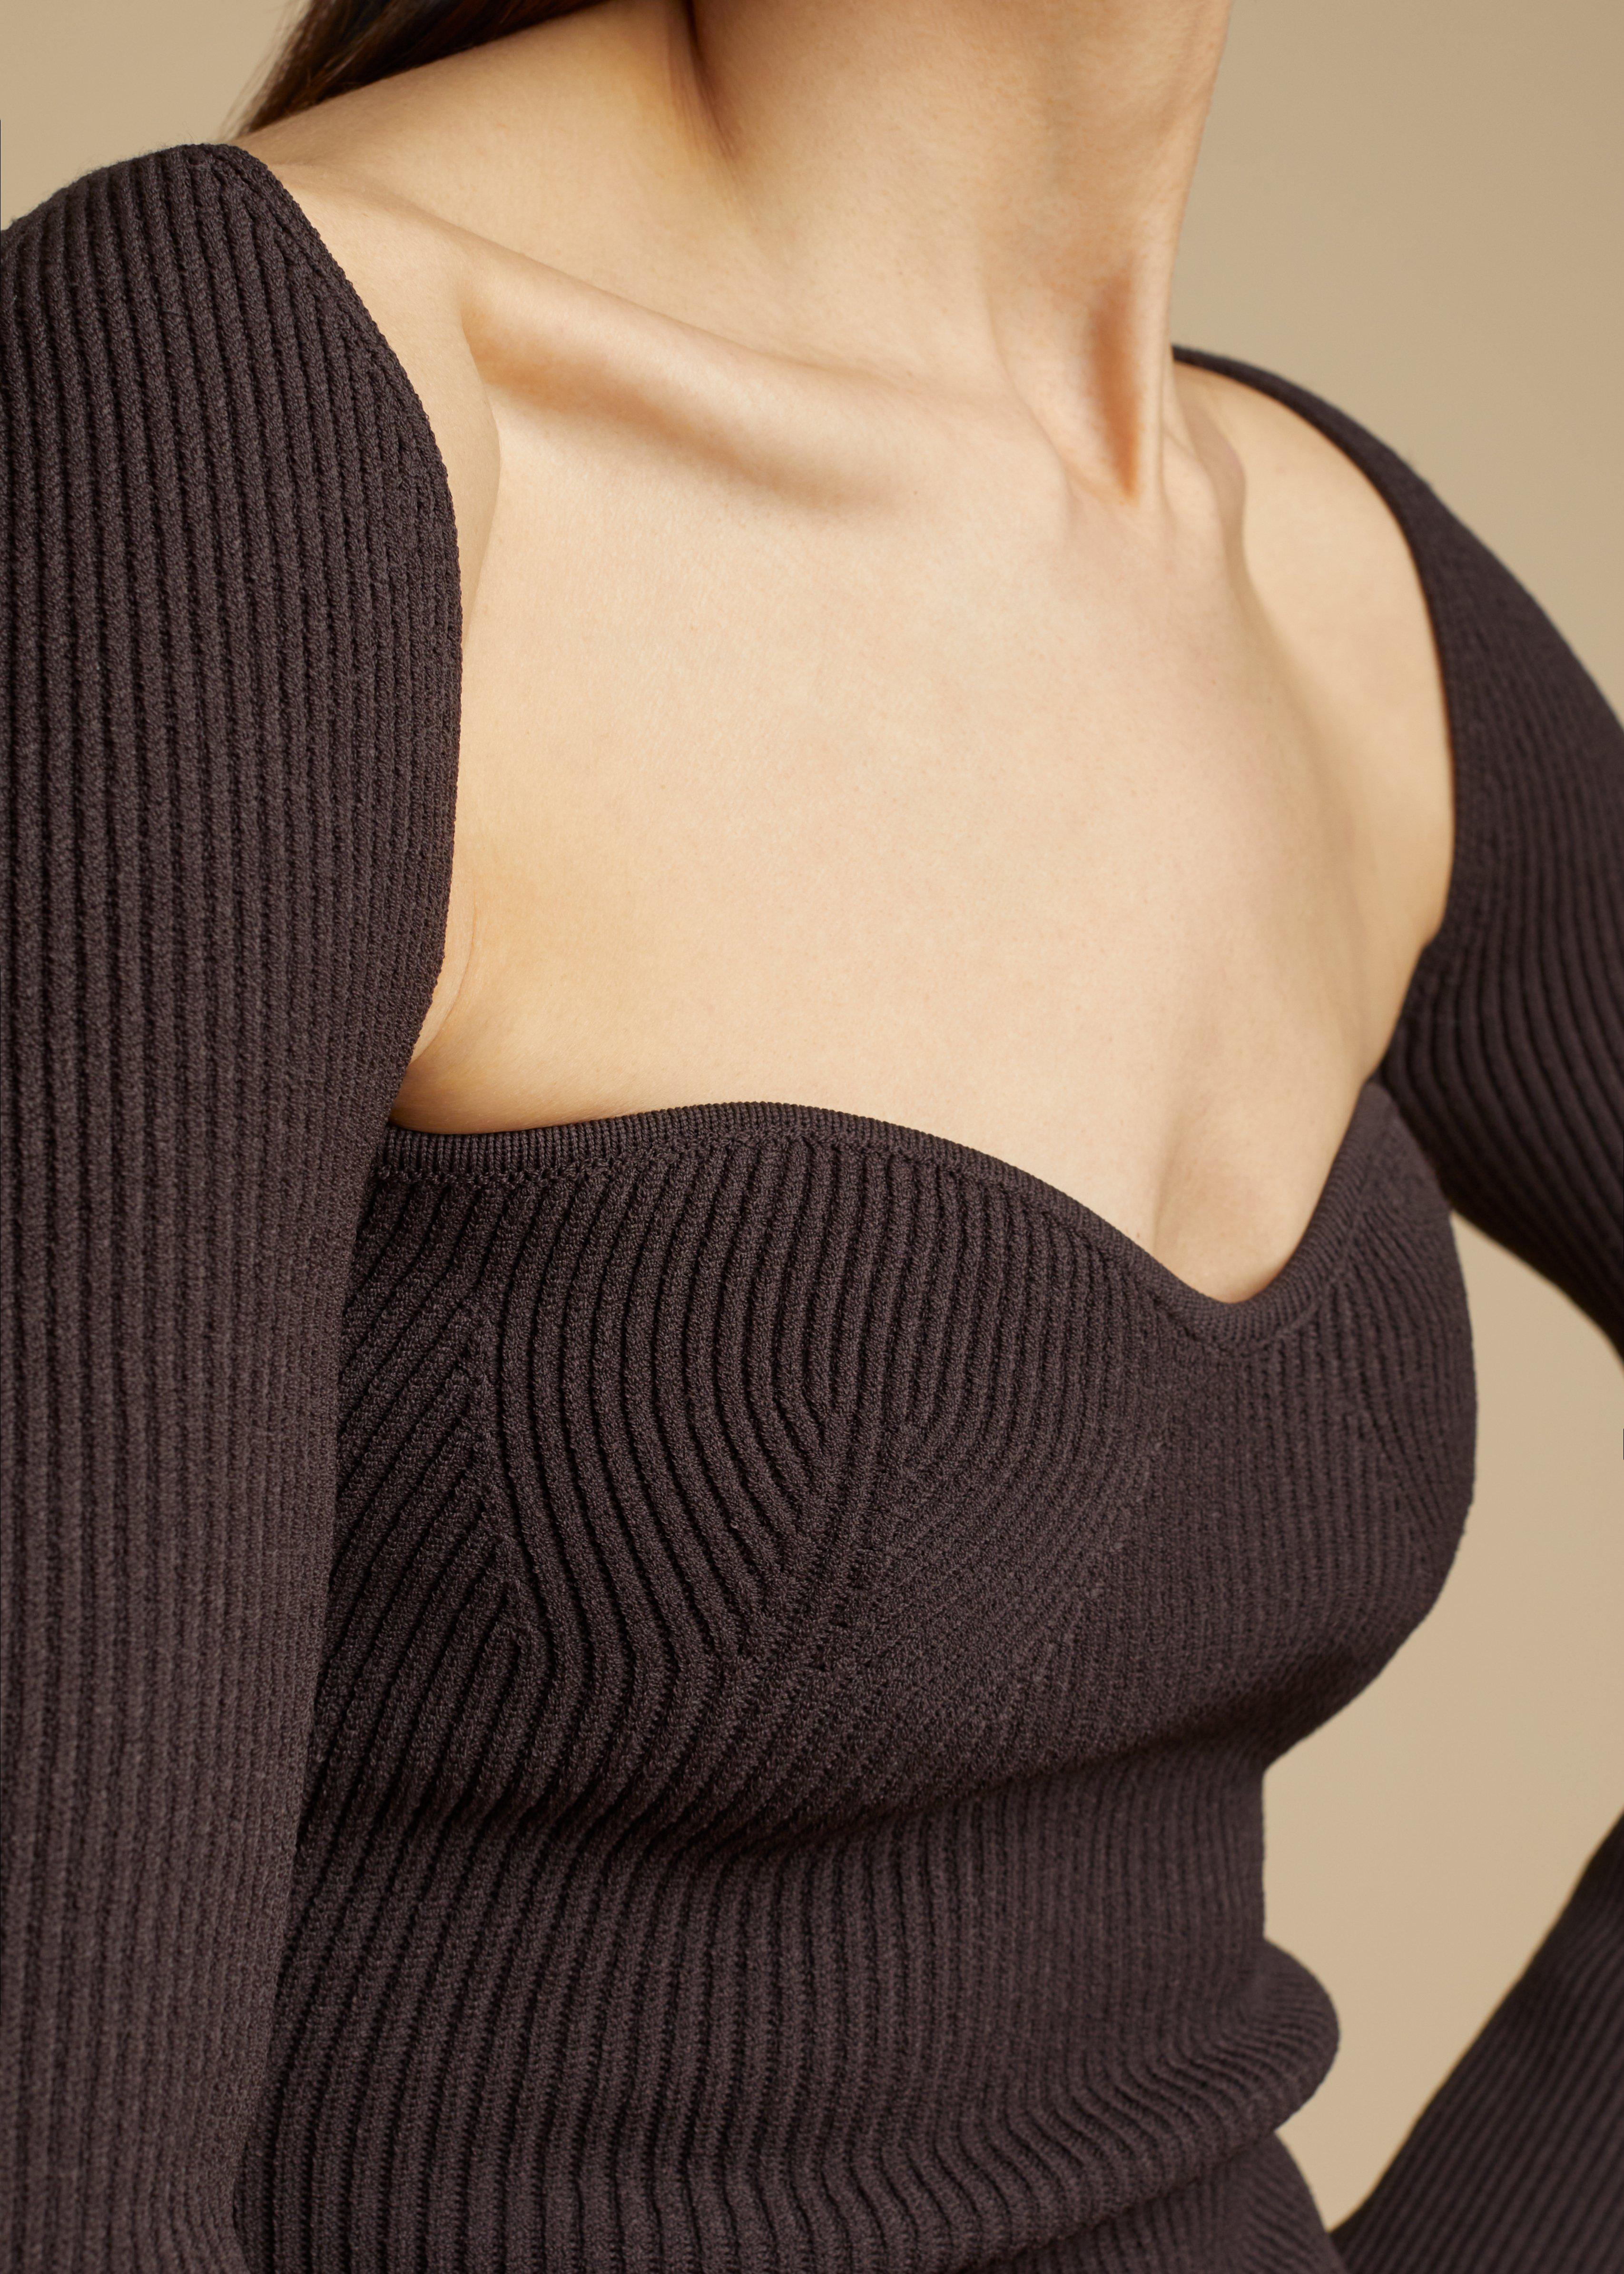 The Maddy Top in Chestnut 4